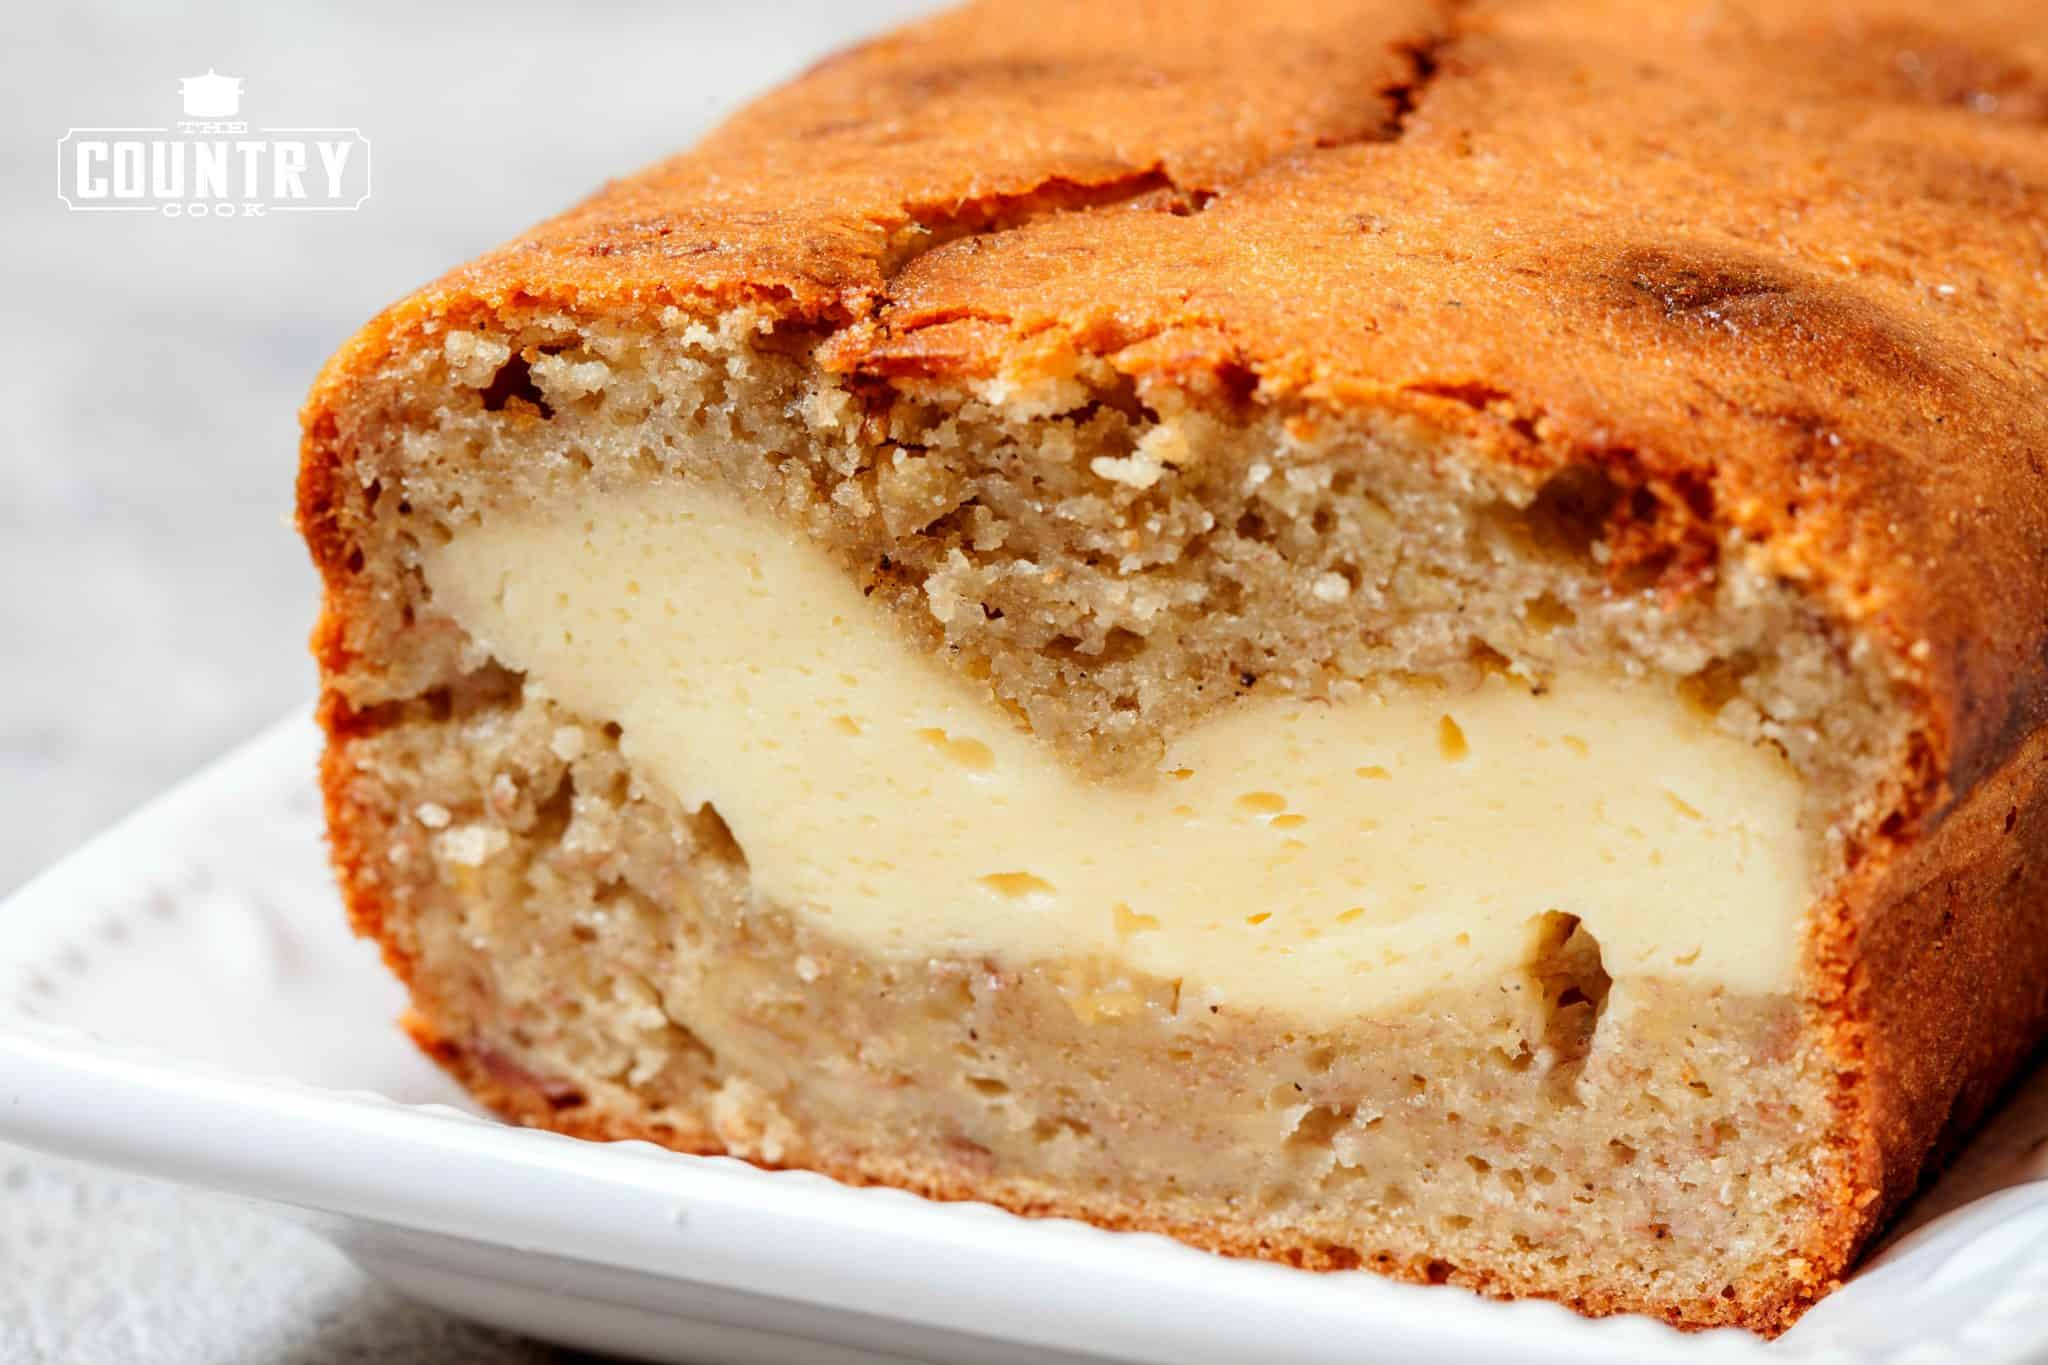 Cheesecake Stuffed Banana Bread   The Country Cook Cheesecake Stuffed Banana Bread